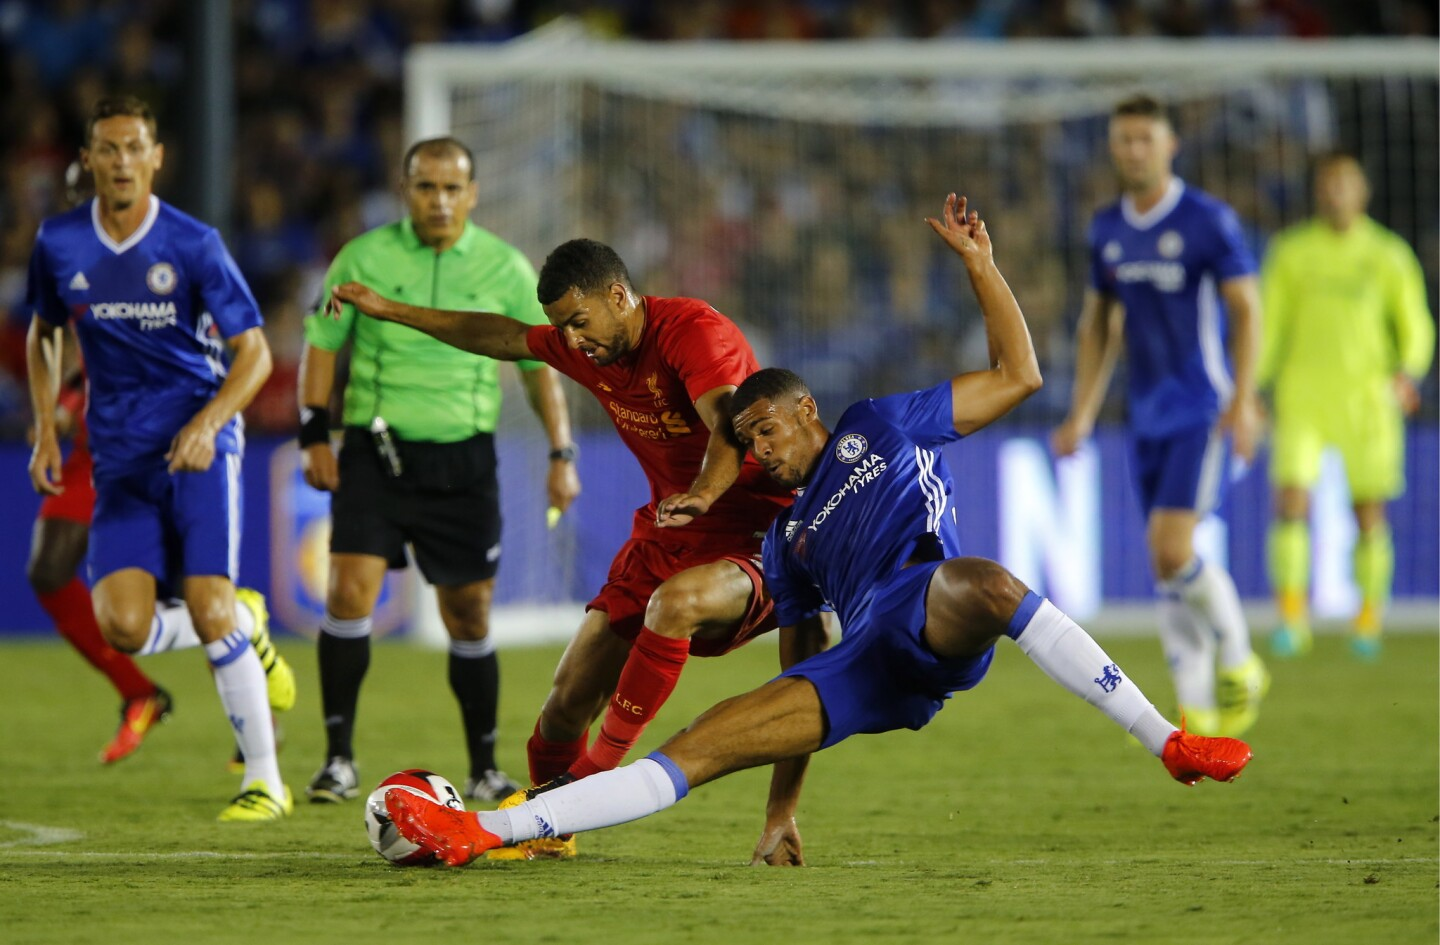 Football - Liverpool v Chelsea - International Champions Cup - Rose Bowl, Pasadena, California, United States of America - 27/7/16 Chelsea's Ruben Loftus-Cheek (R) in action with Liverpool's Kevin Stewart Reuters / Mike Blake Livepic ** Usable by SD ONLY **